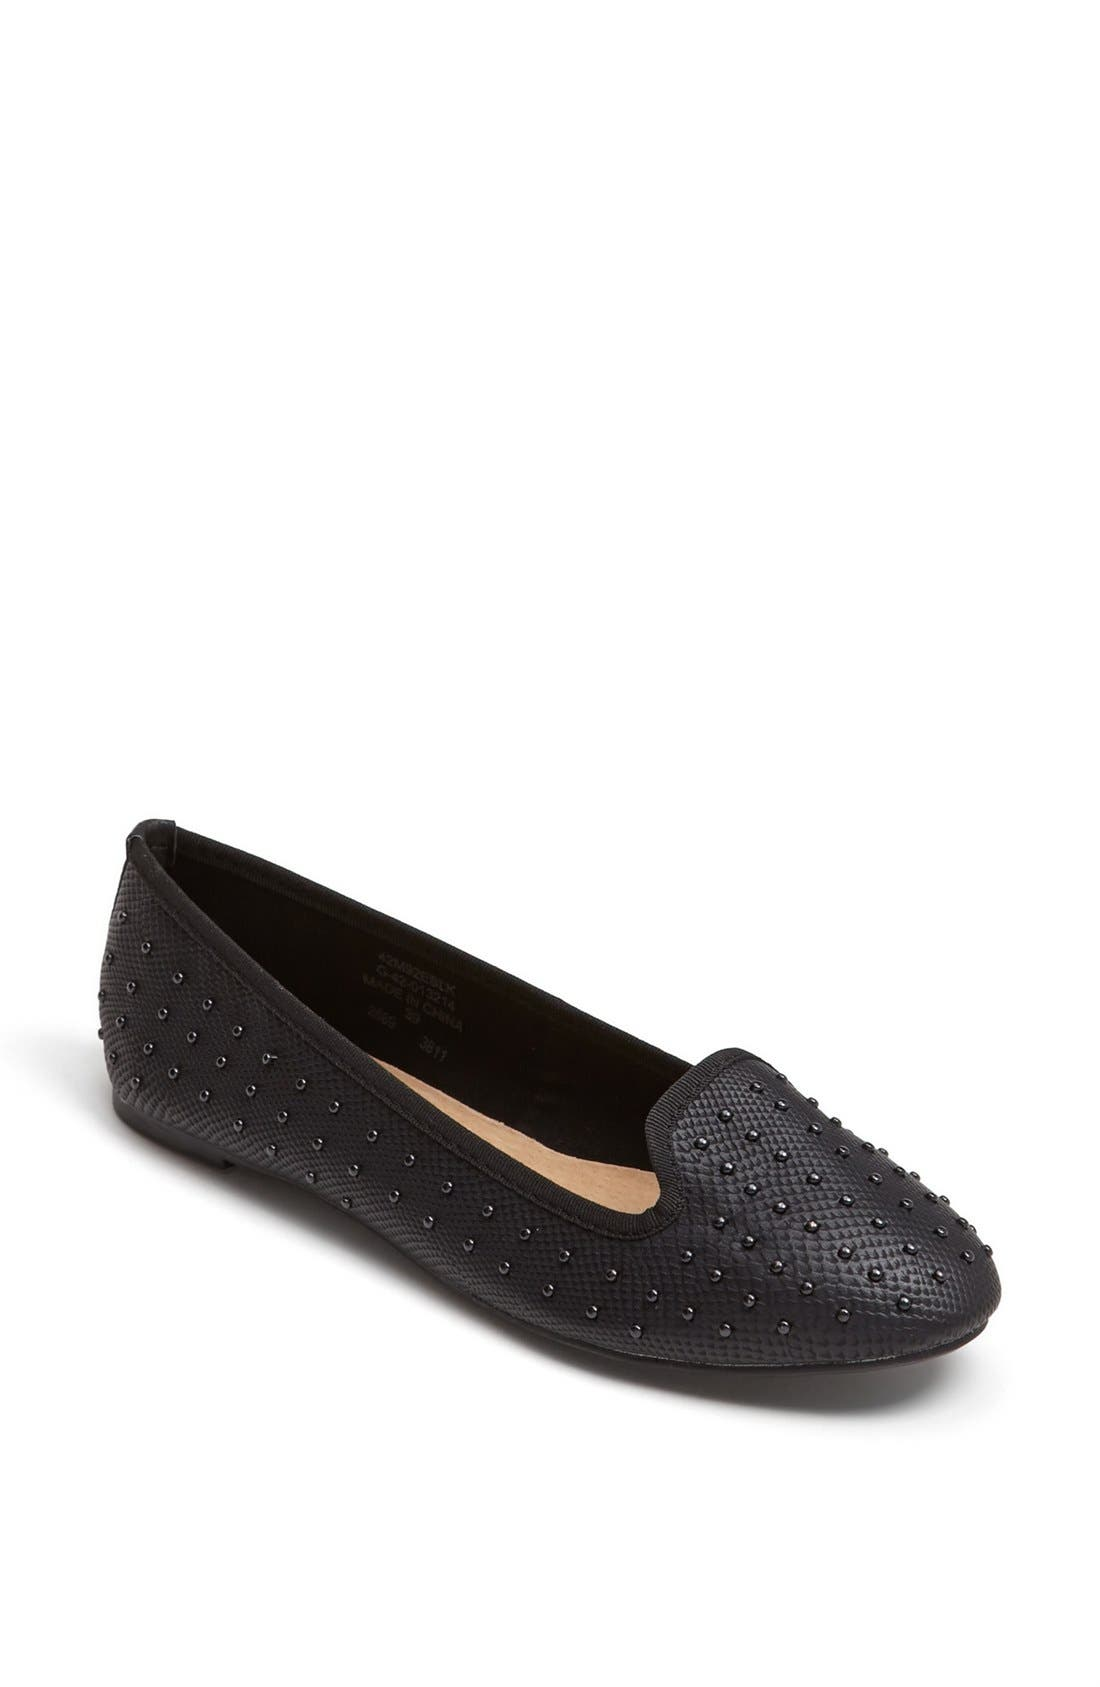 Alternate Image 1 Selected - Topshop 'Miko' Smoking Slipper